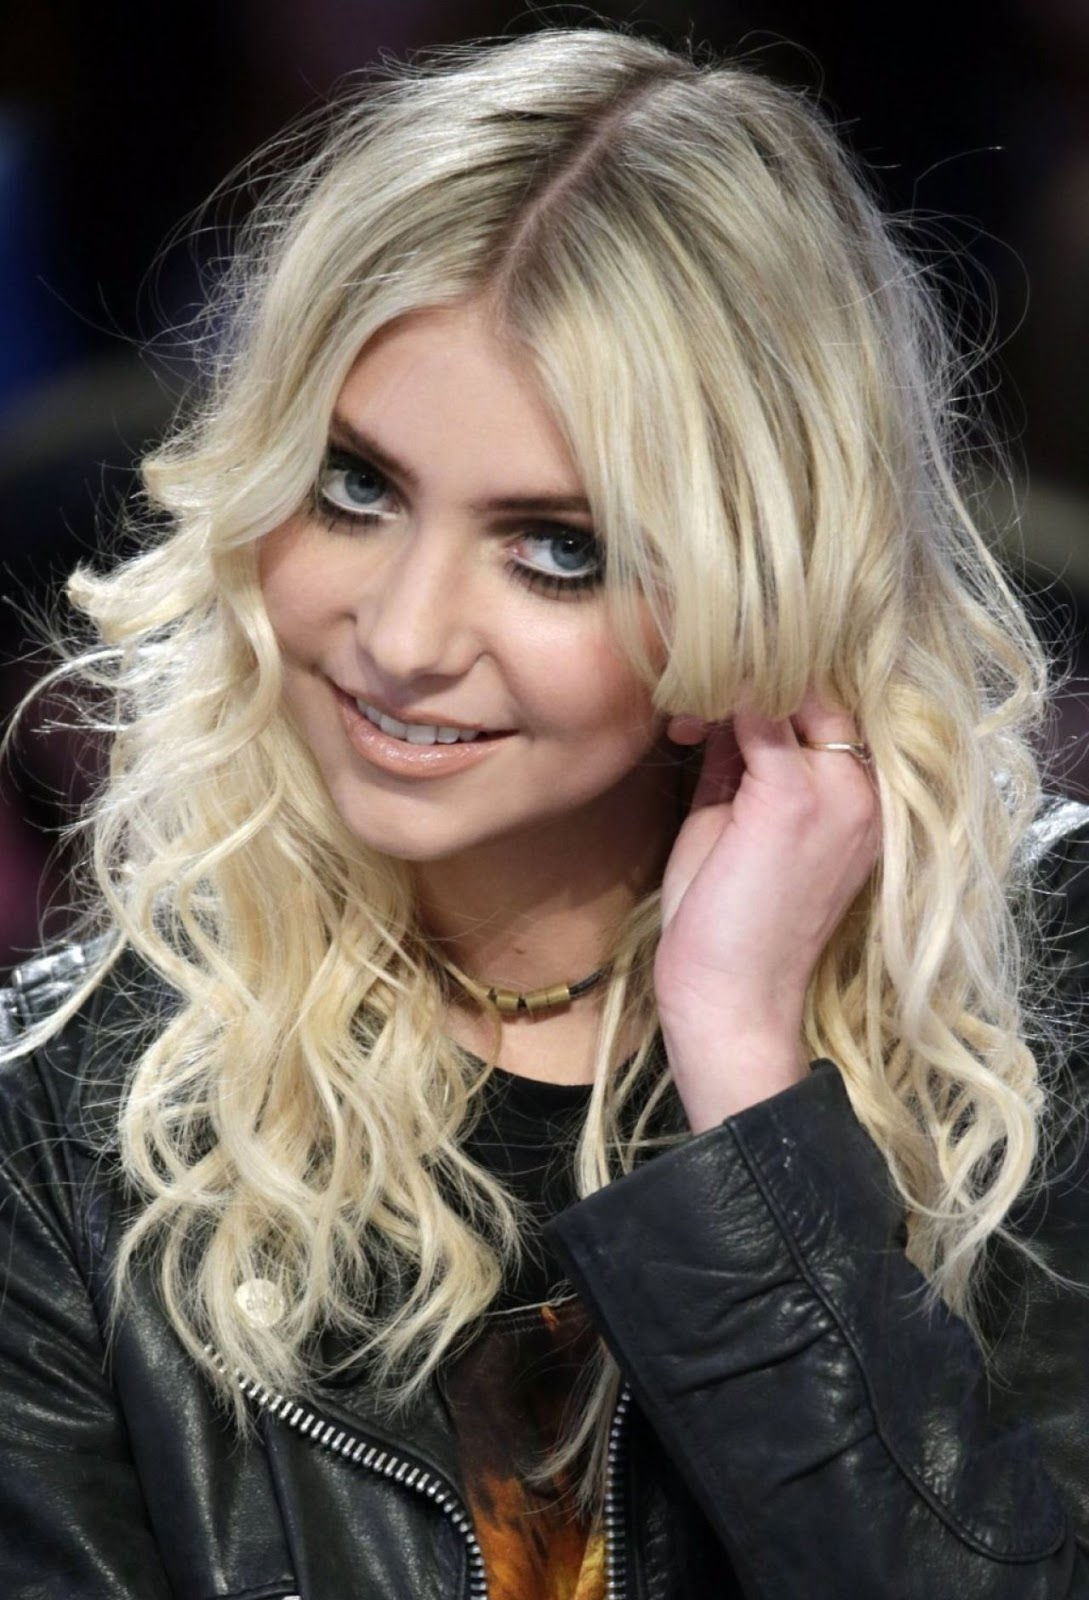 Flower Images 3d Wallpapers 22 Beautiful Taylor Momsen 2018 Images Photos Amp Wallpaper